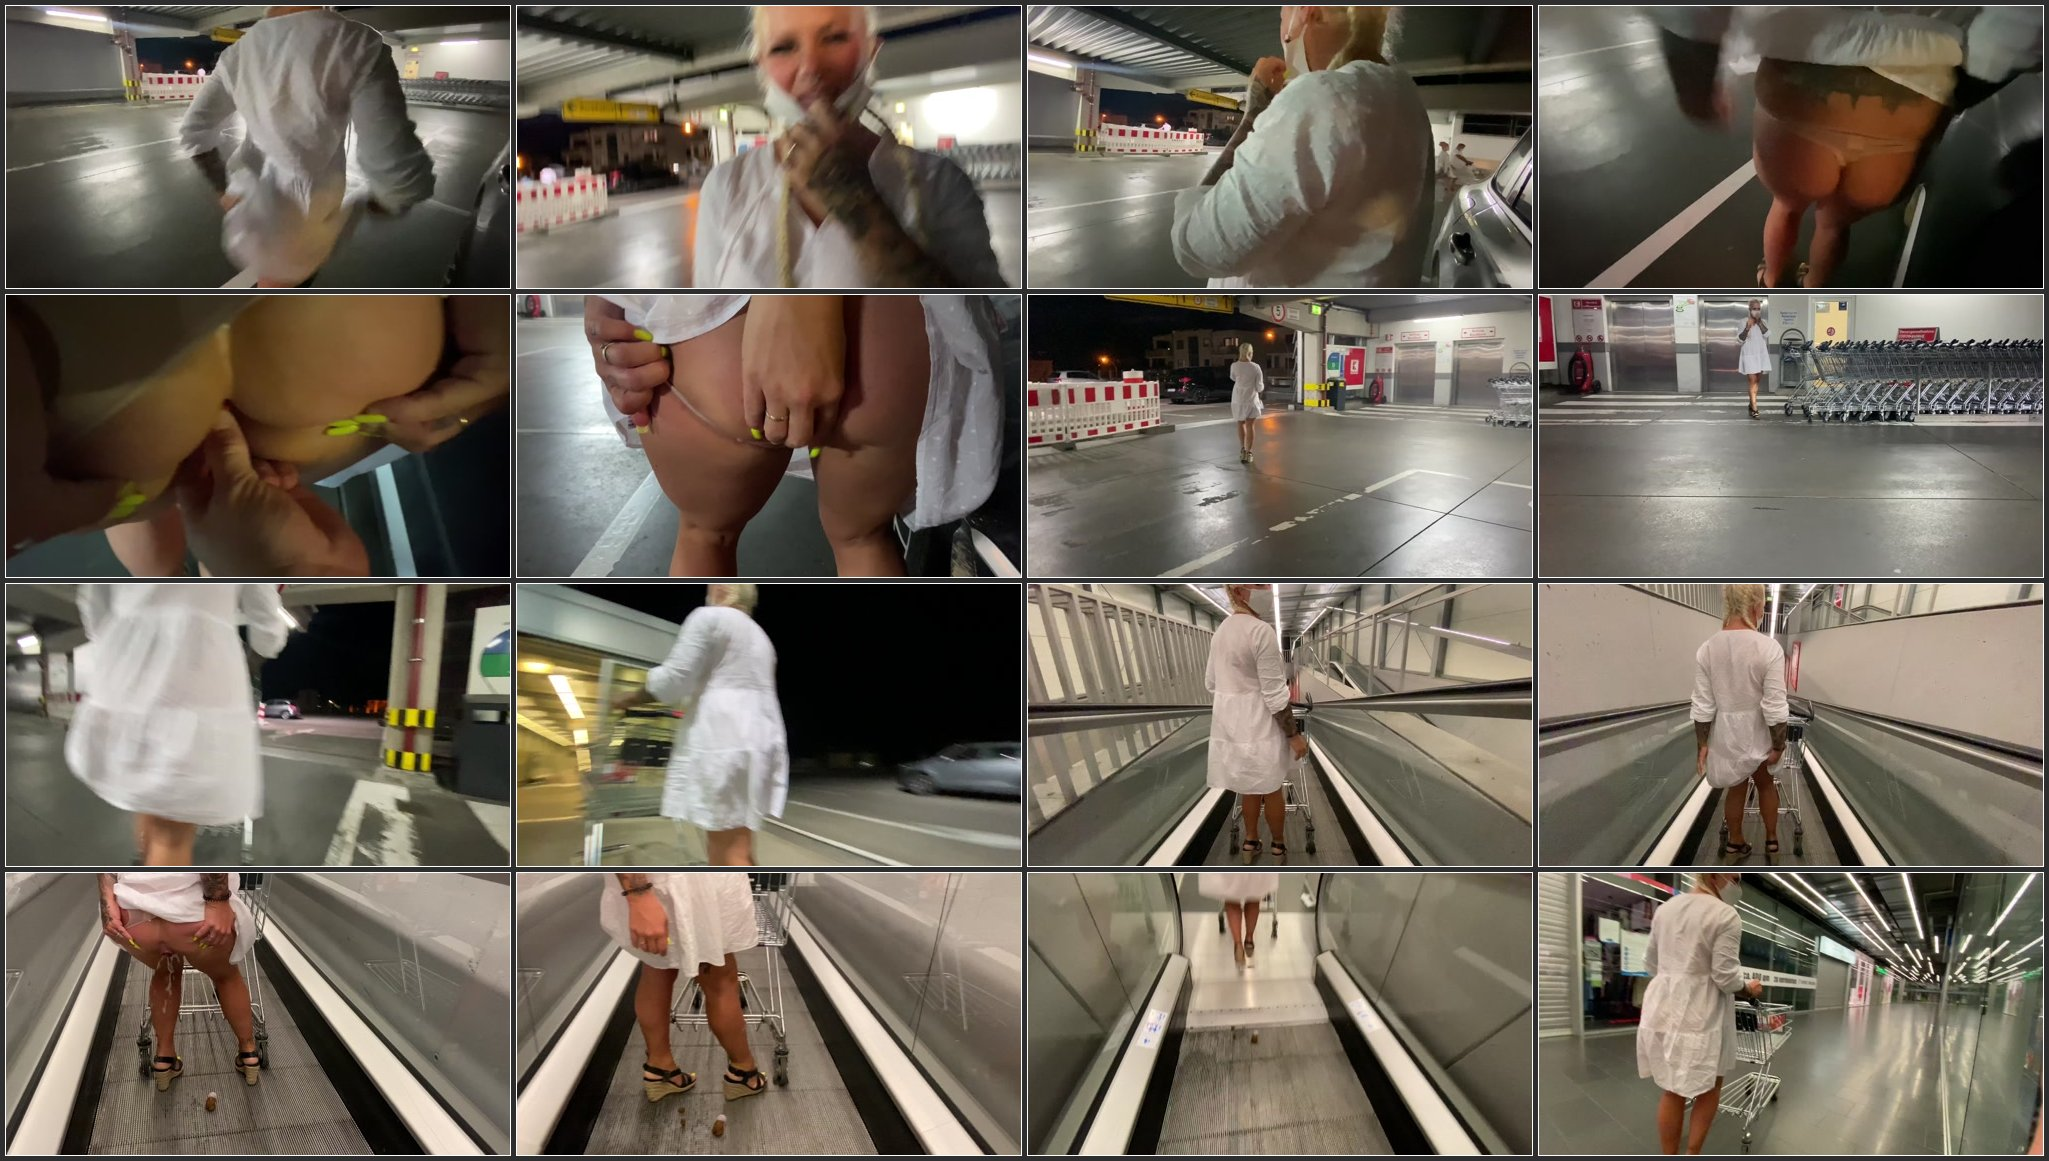 Cork anal and then that happens on the escalator -O.ScrinList